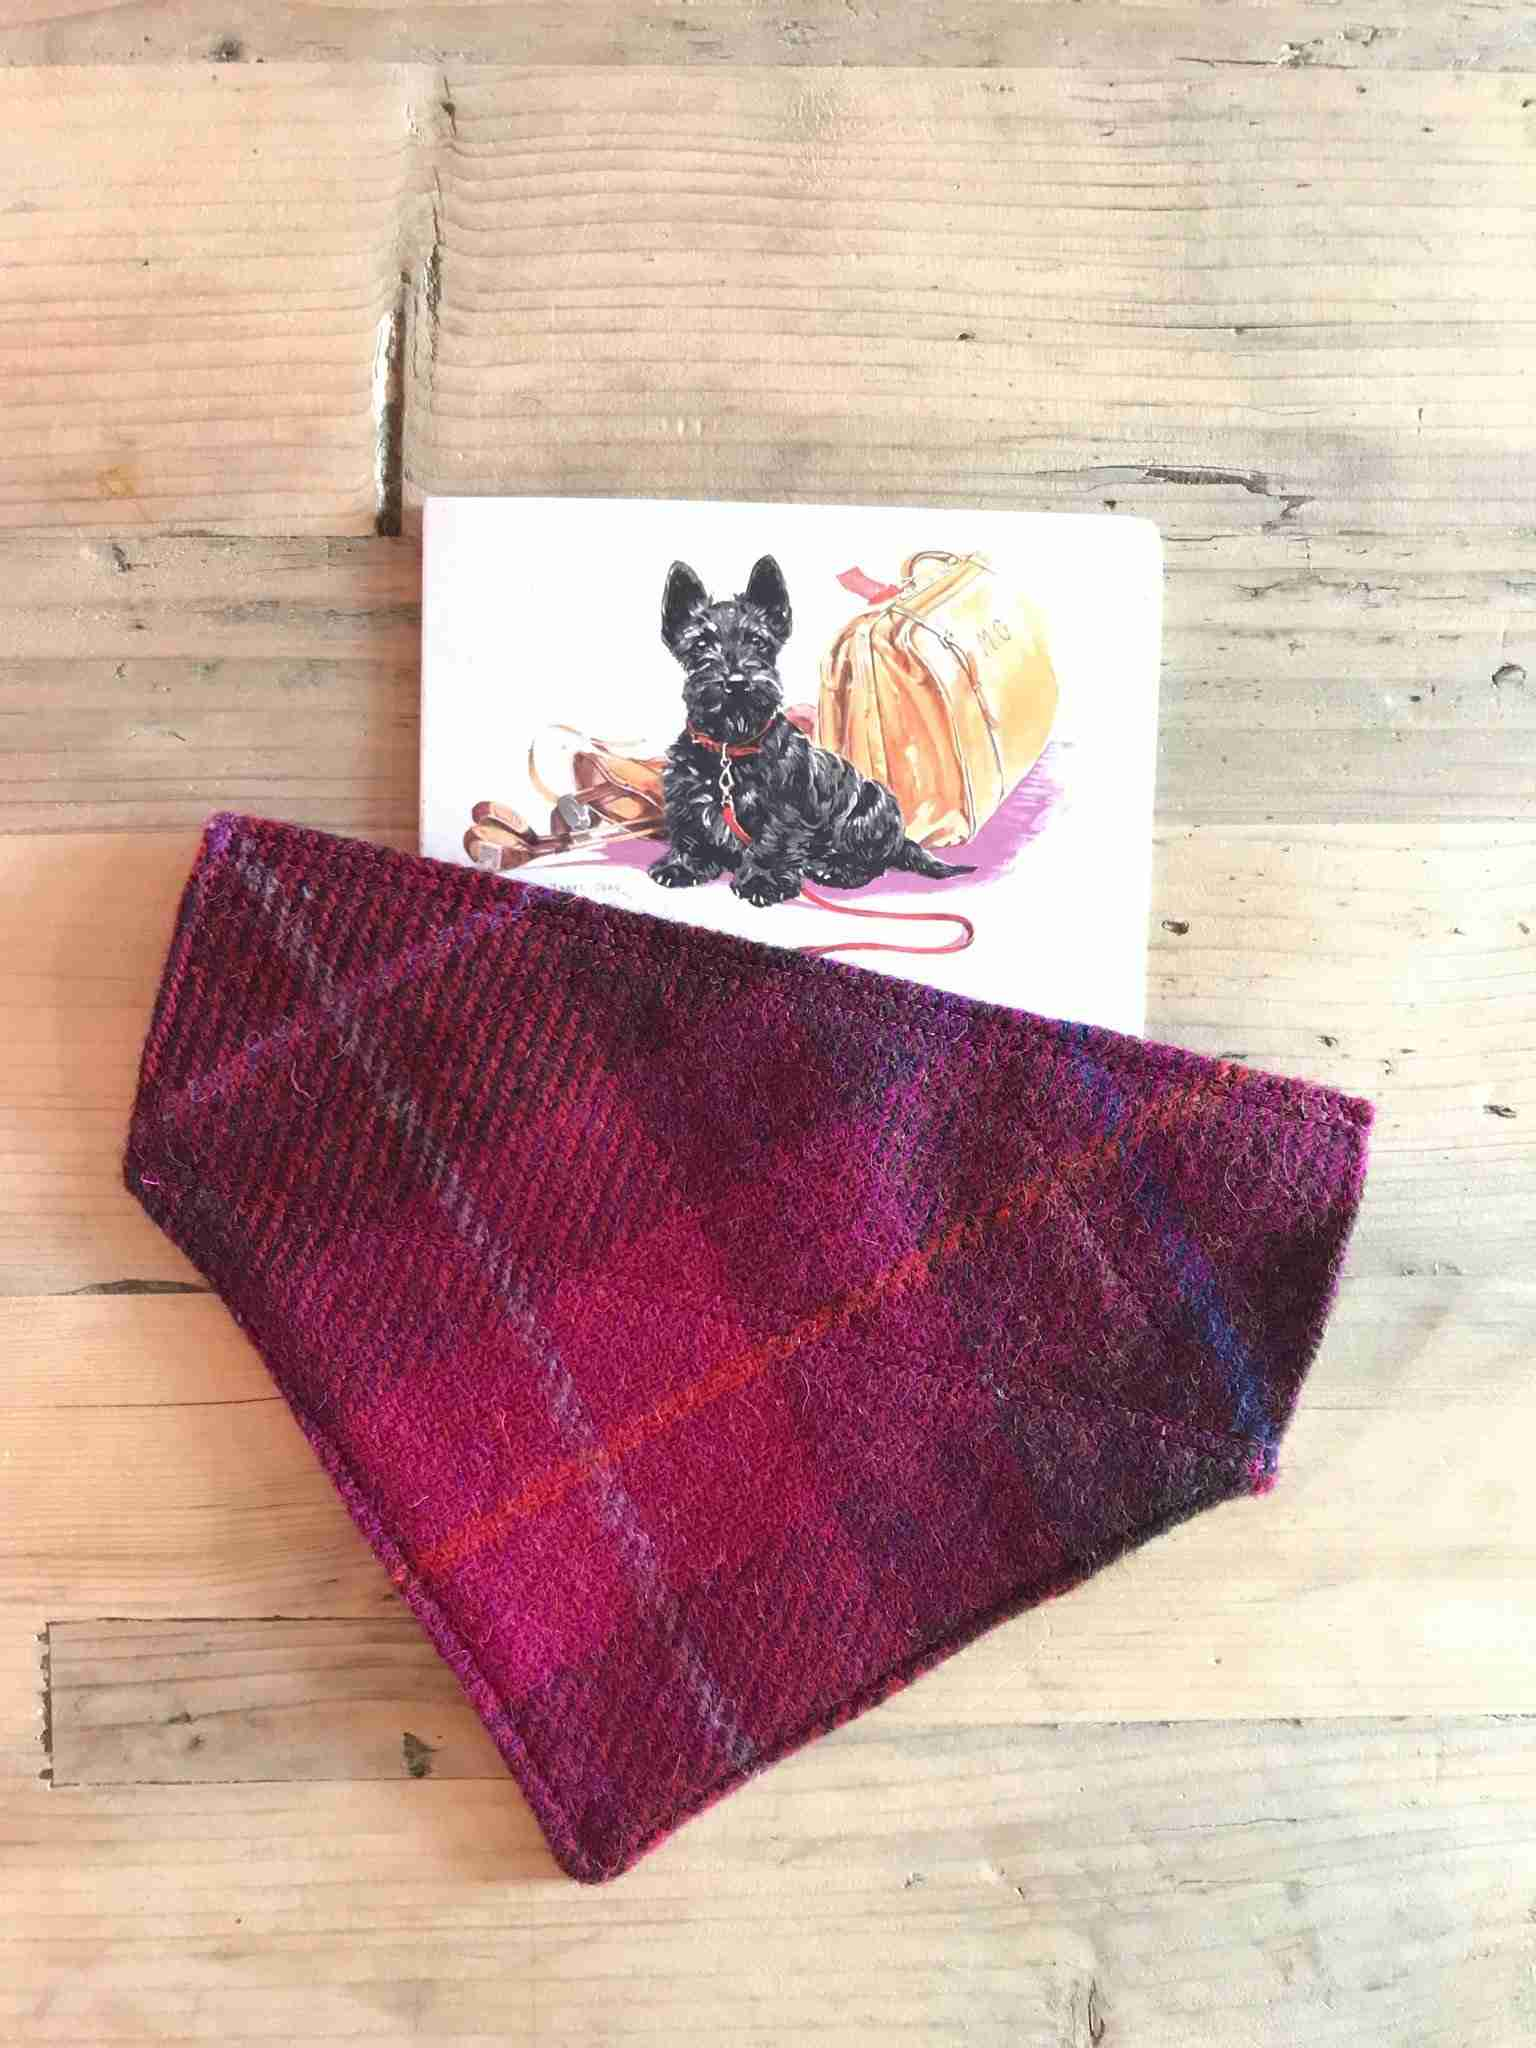 Scrufts' Harris Tweed Slip-on Bandana in Blackcurrant